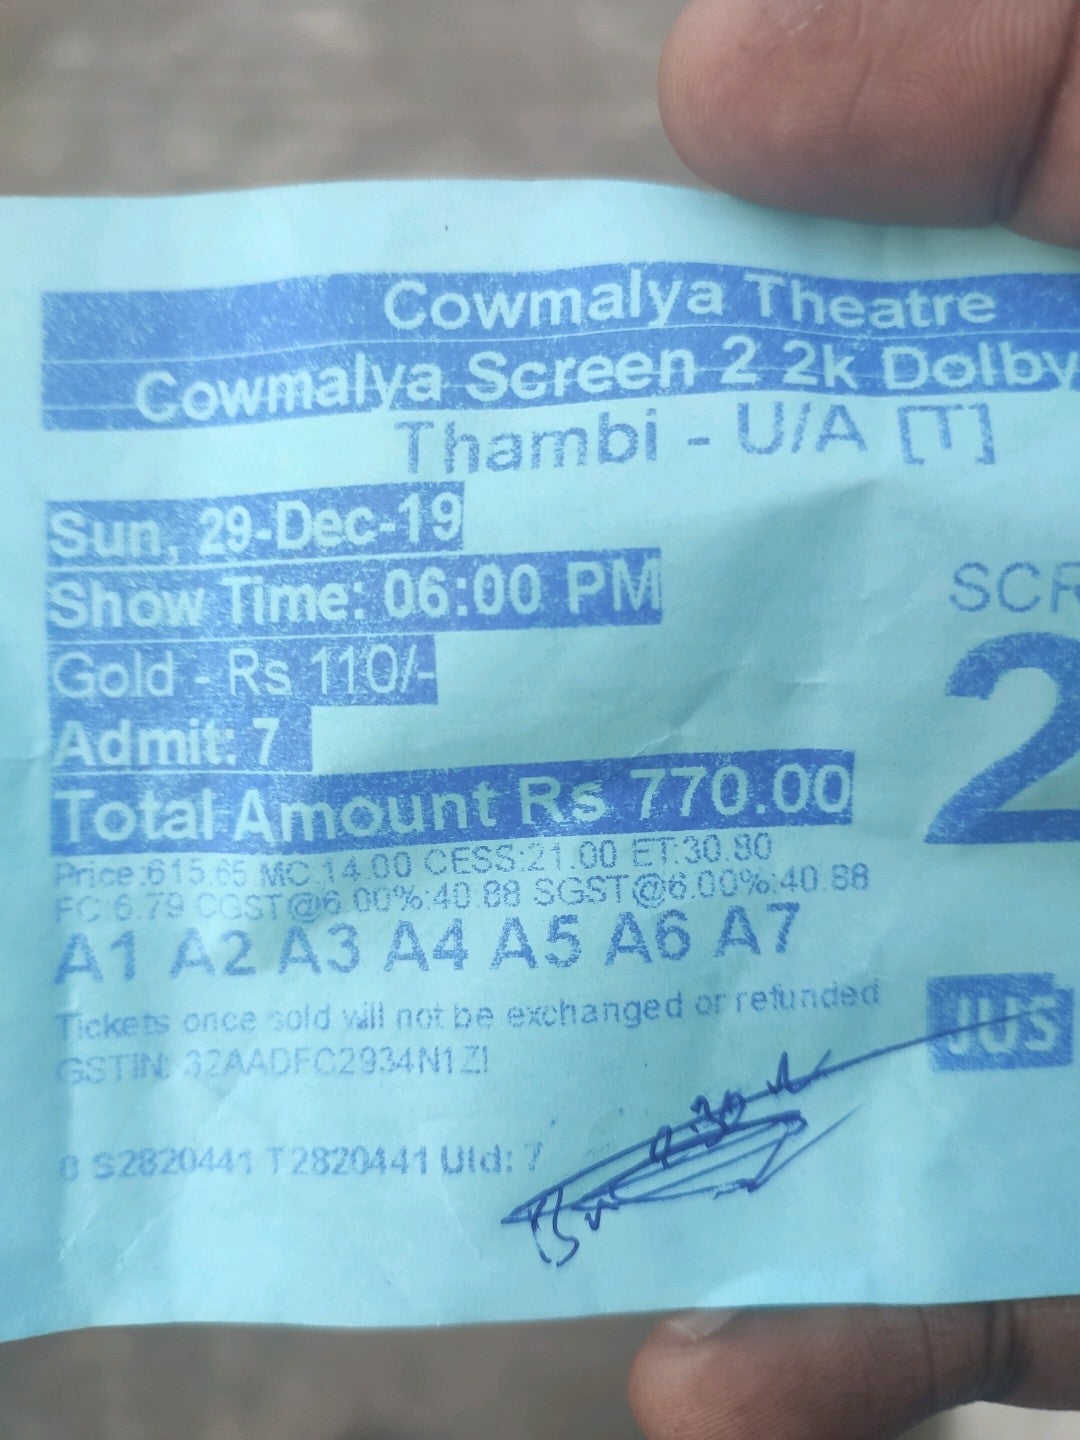 Checked in at cowmalaya theatre